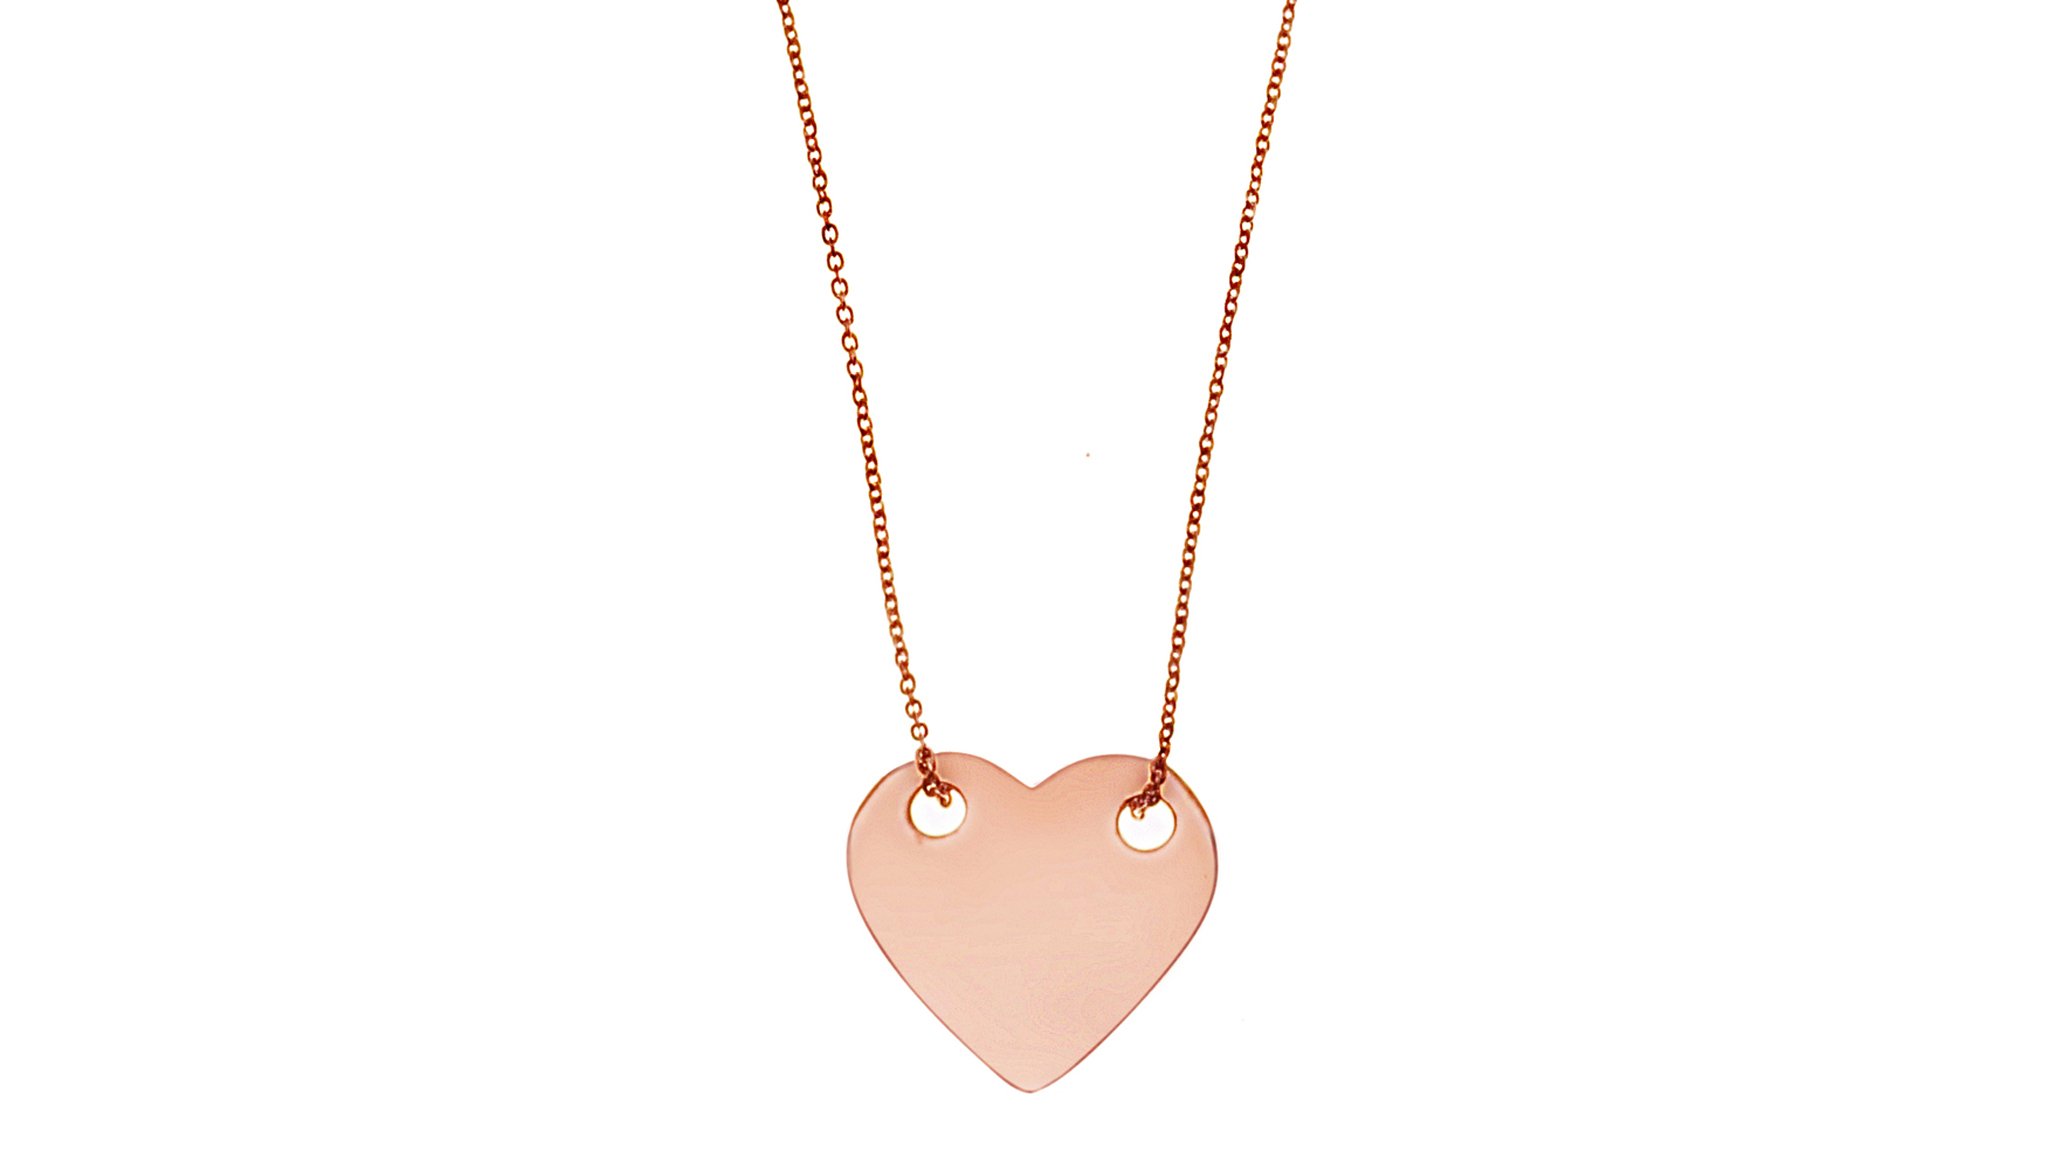 The 12 necklaces of Valentine's Day